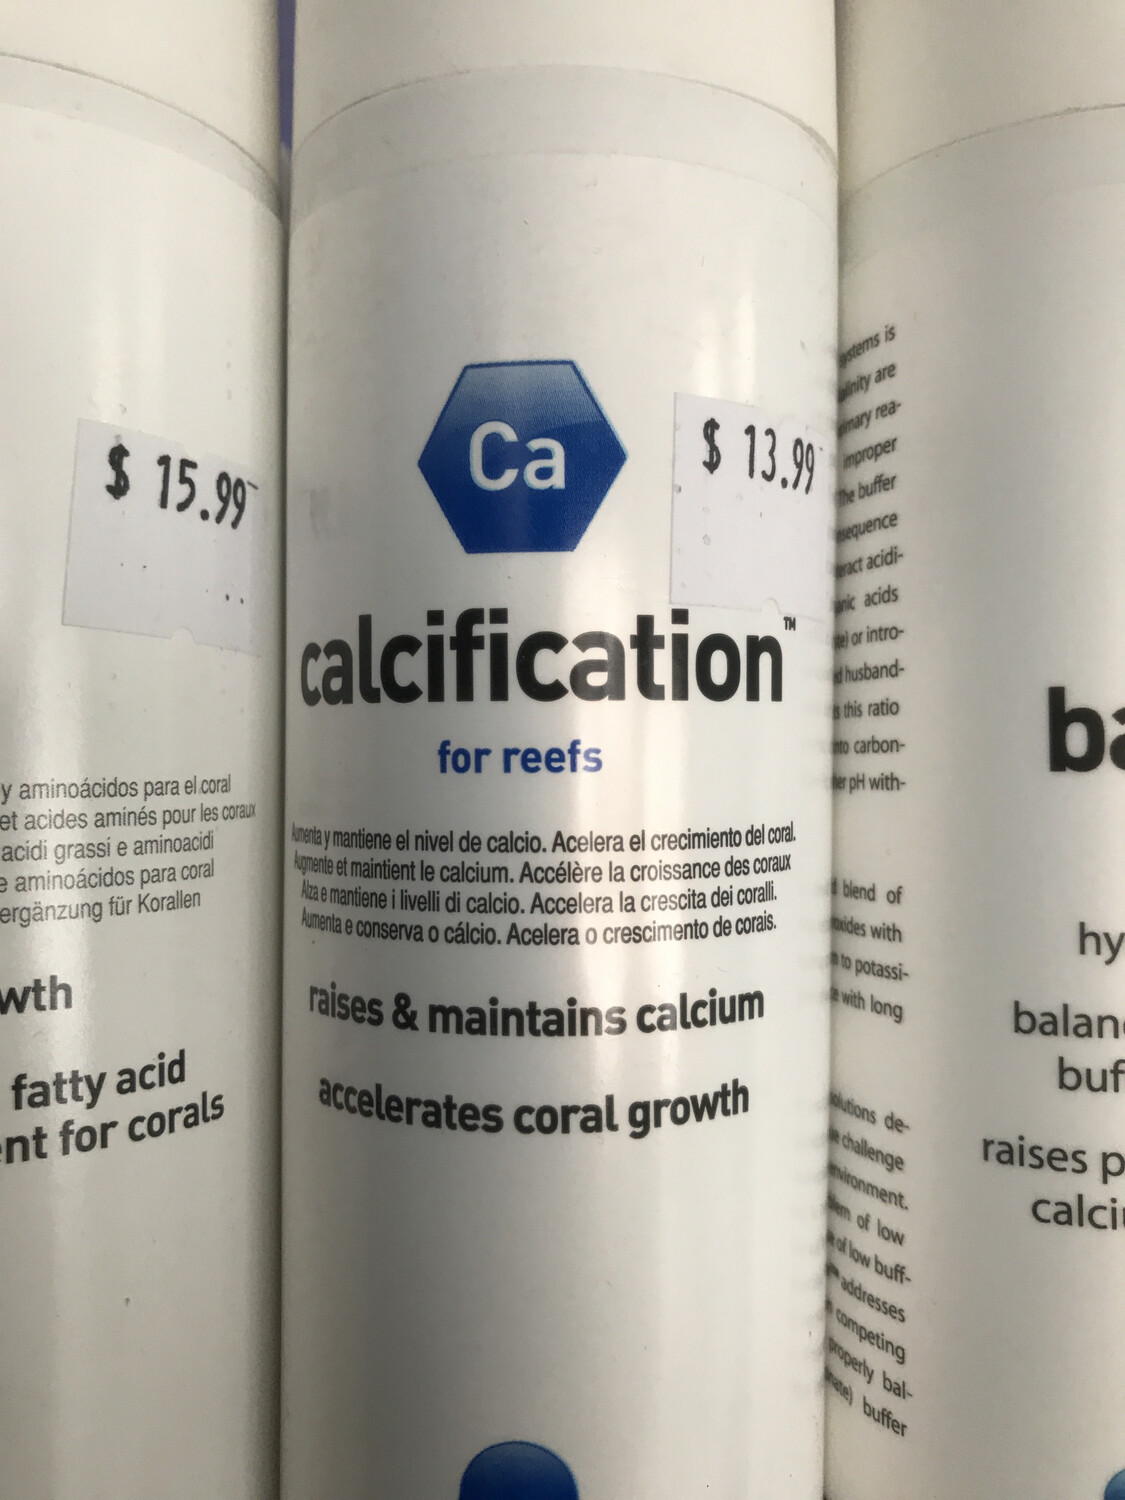 AquaVitro Calcification 350ml